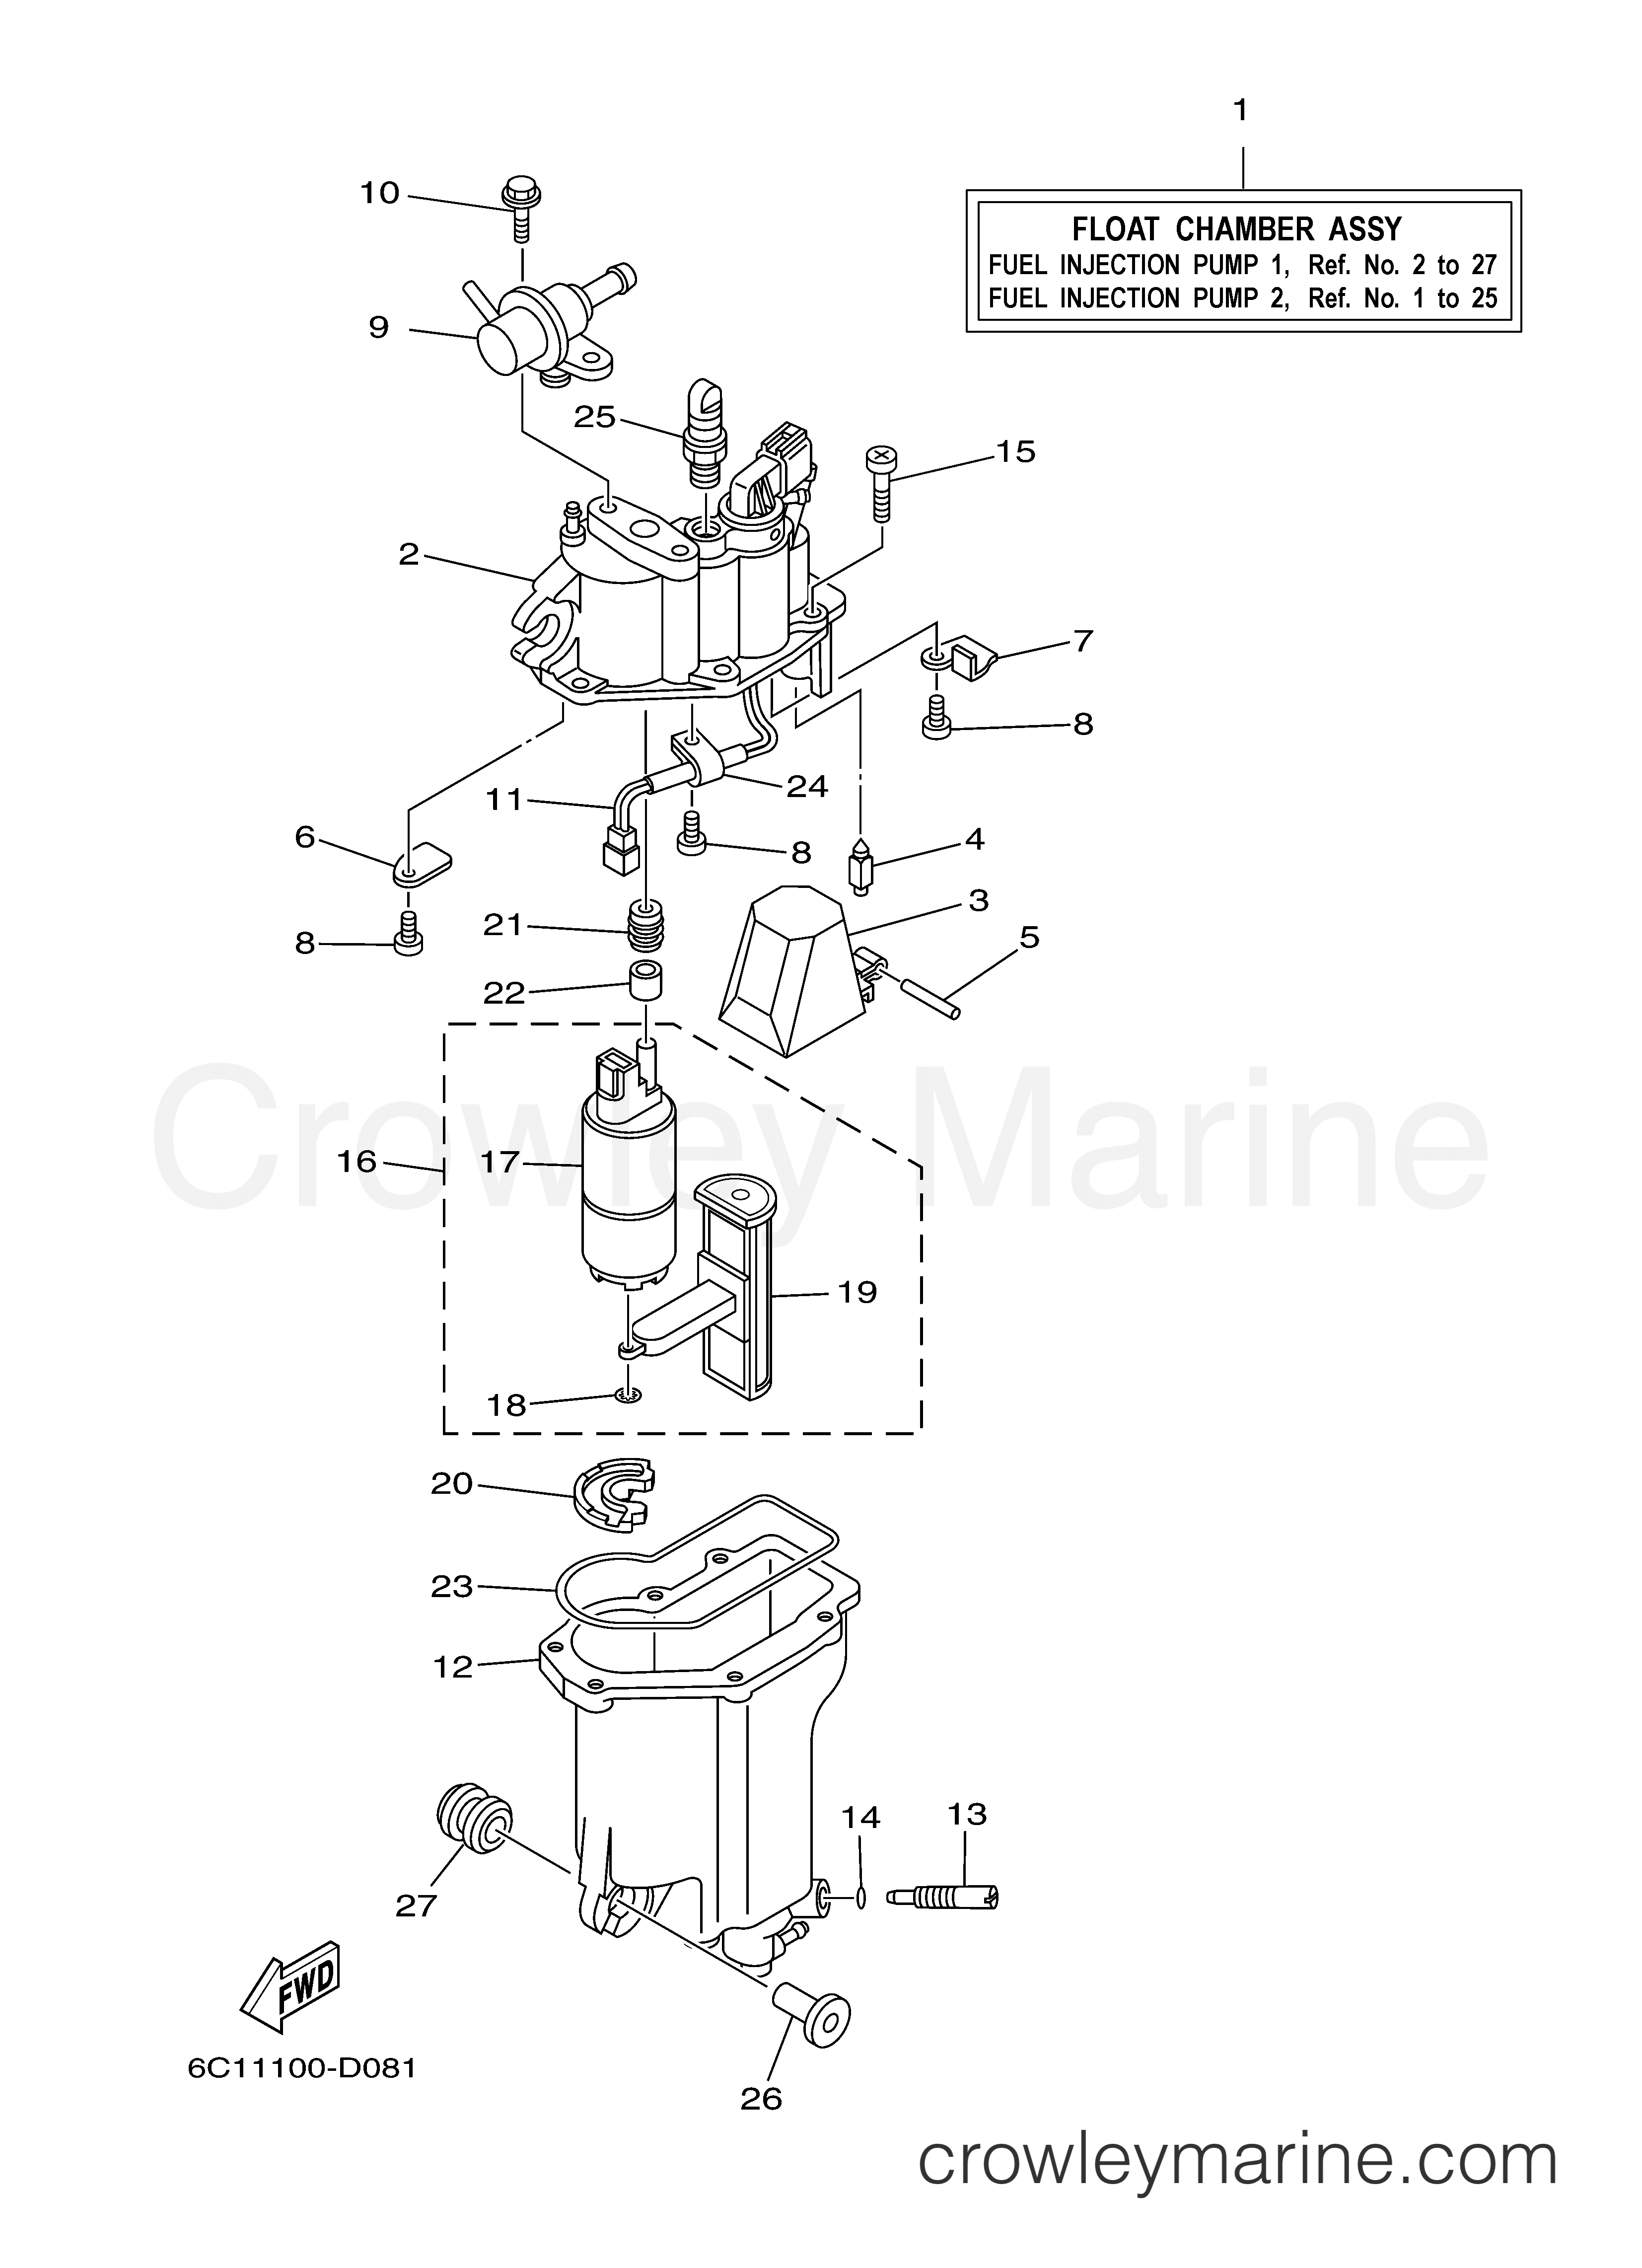 Fuel Injection Pump 1